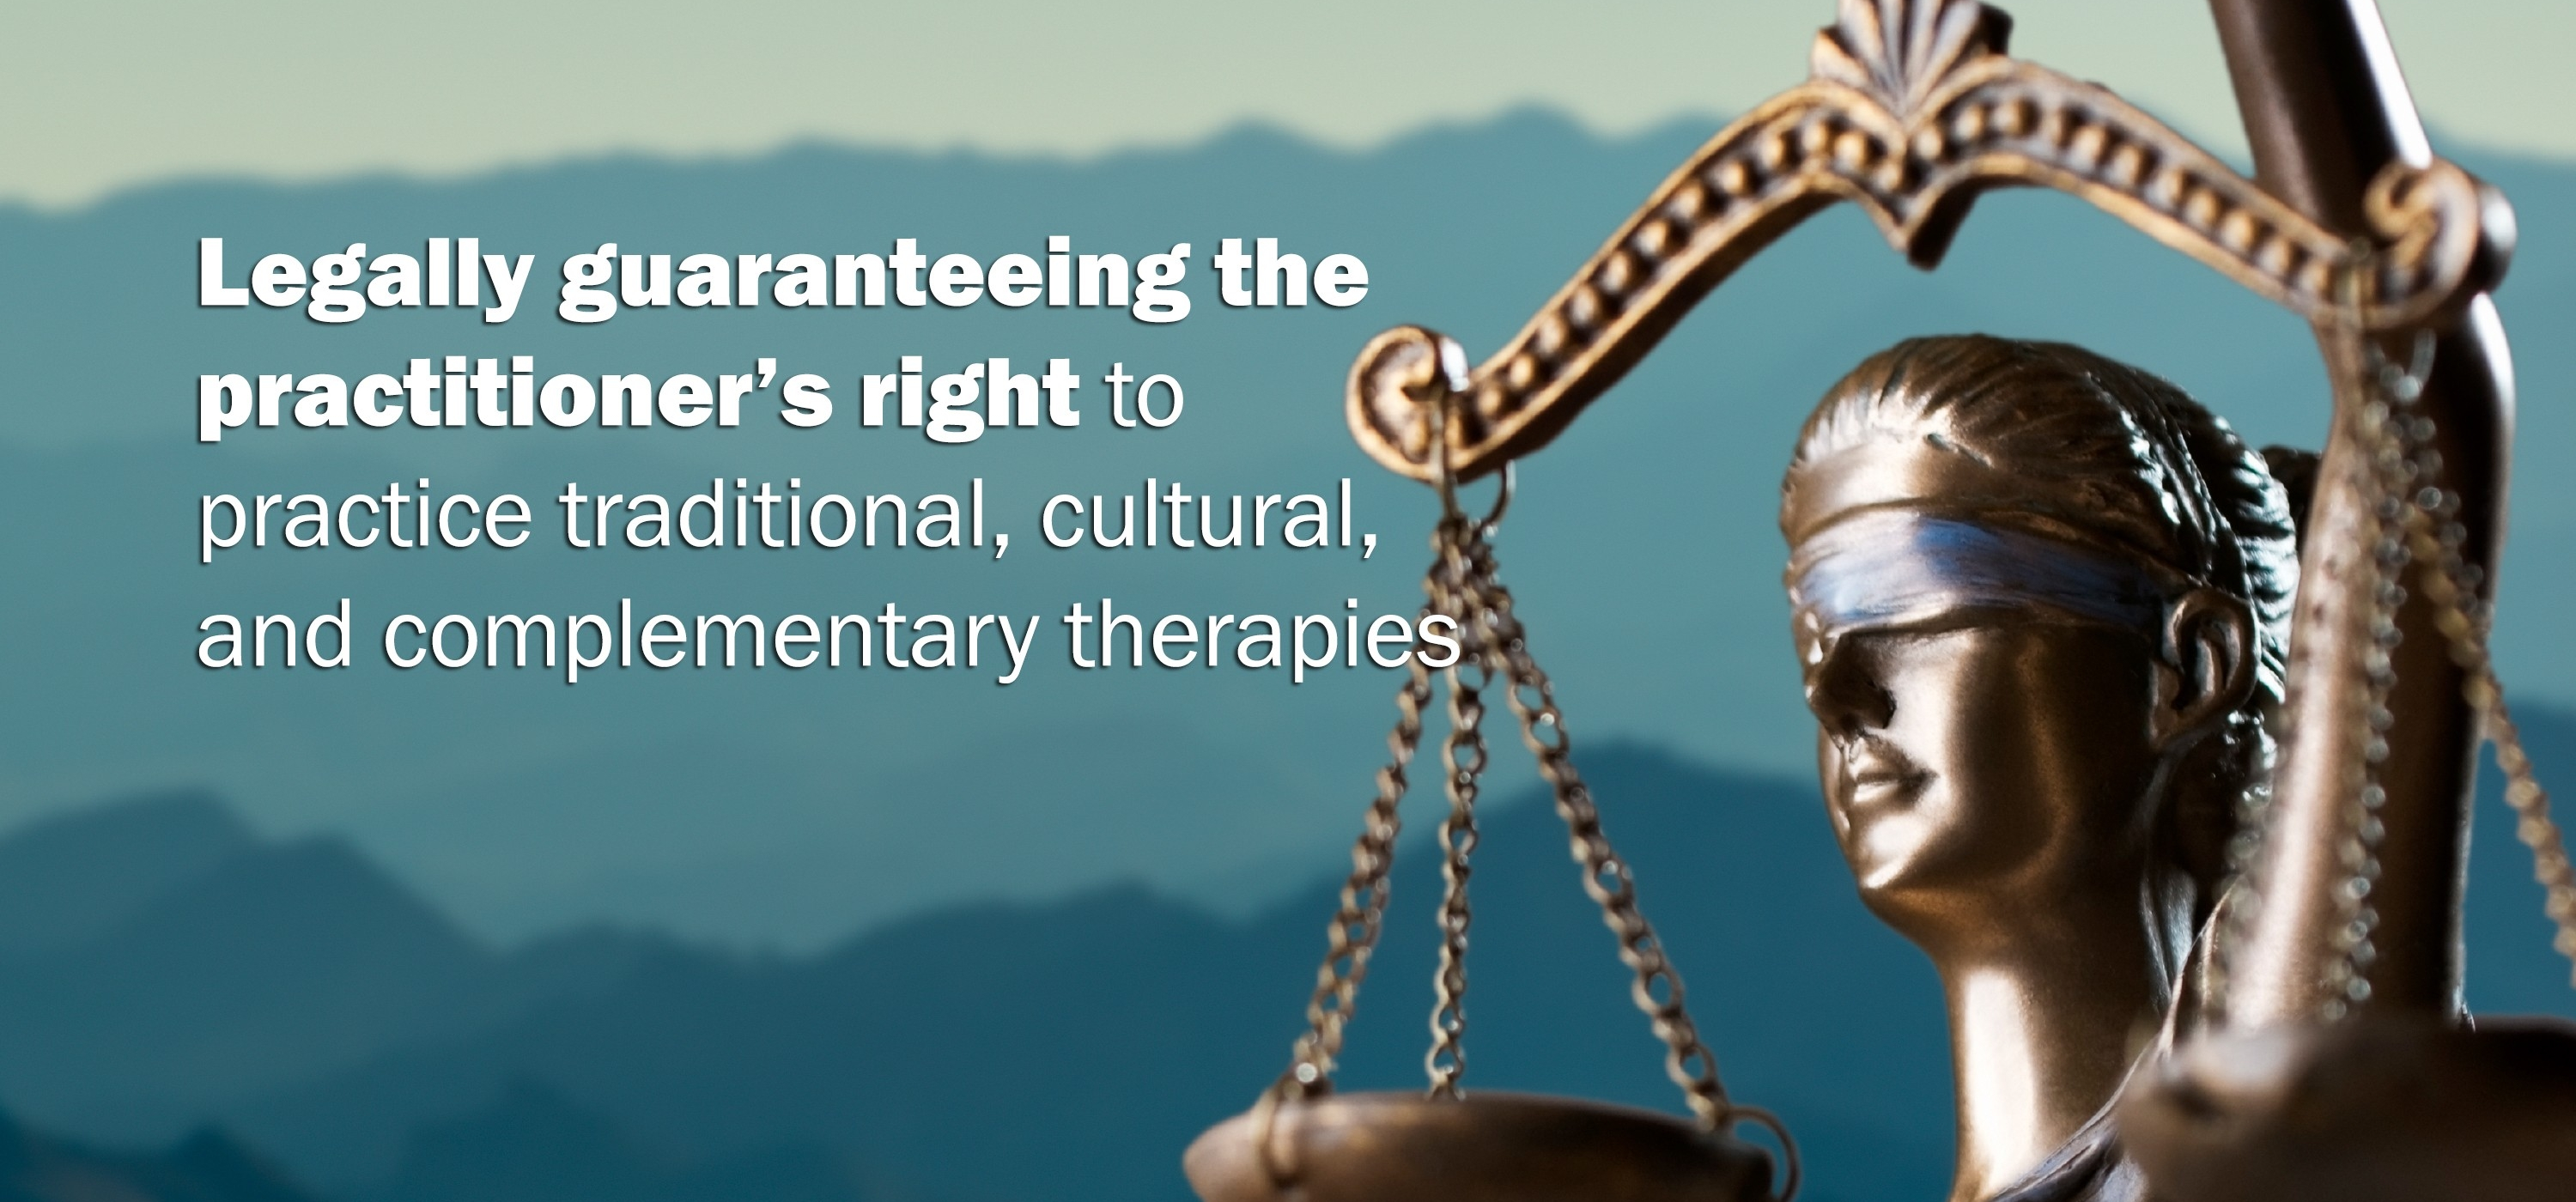 Legally guaranteeing the practitioner's right to practice traditional, cultural, and complementary therapies